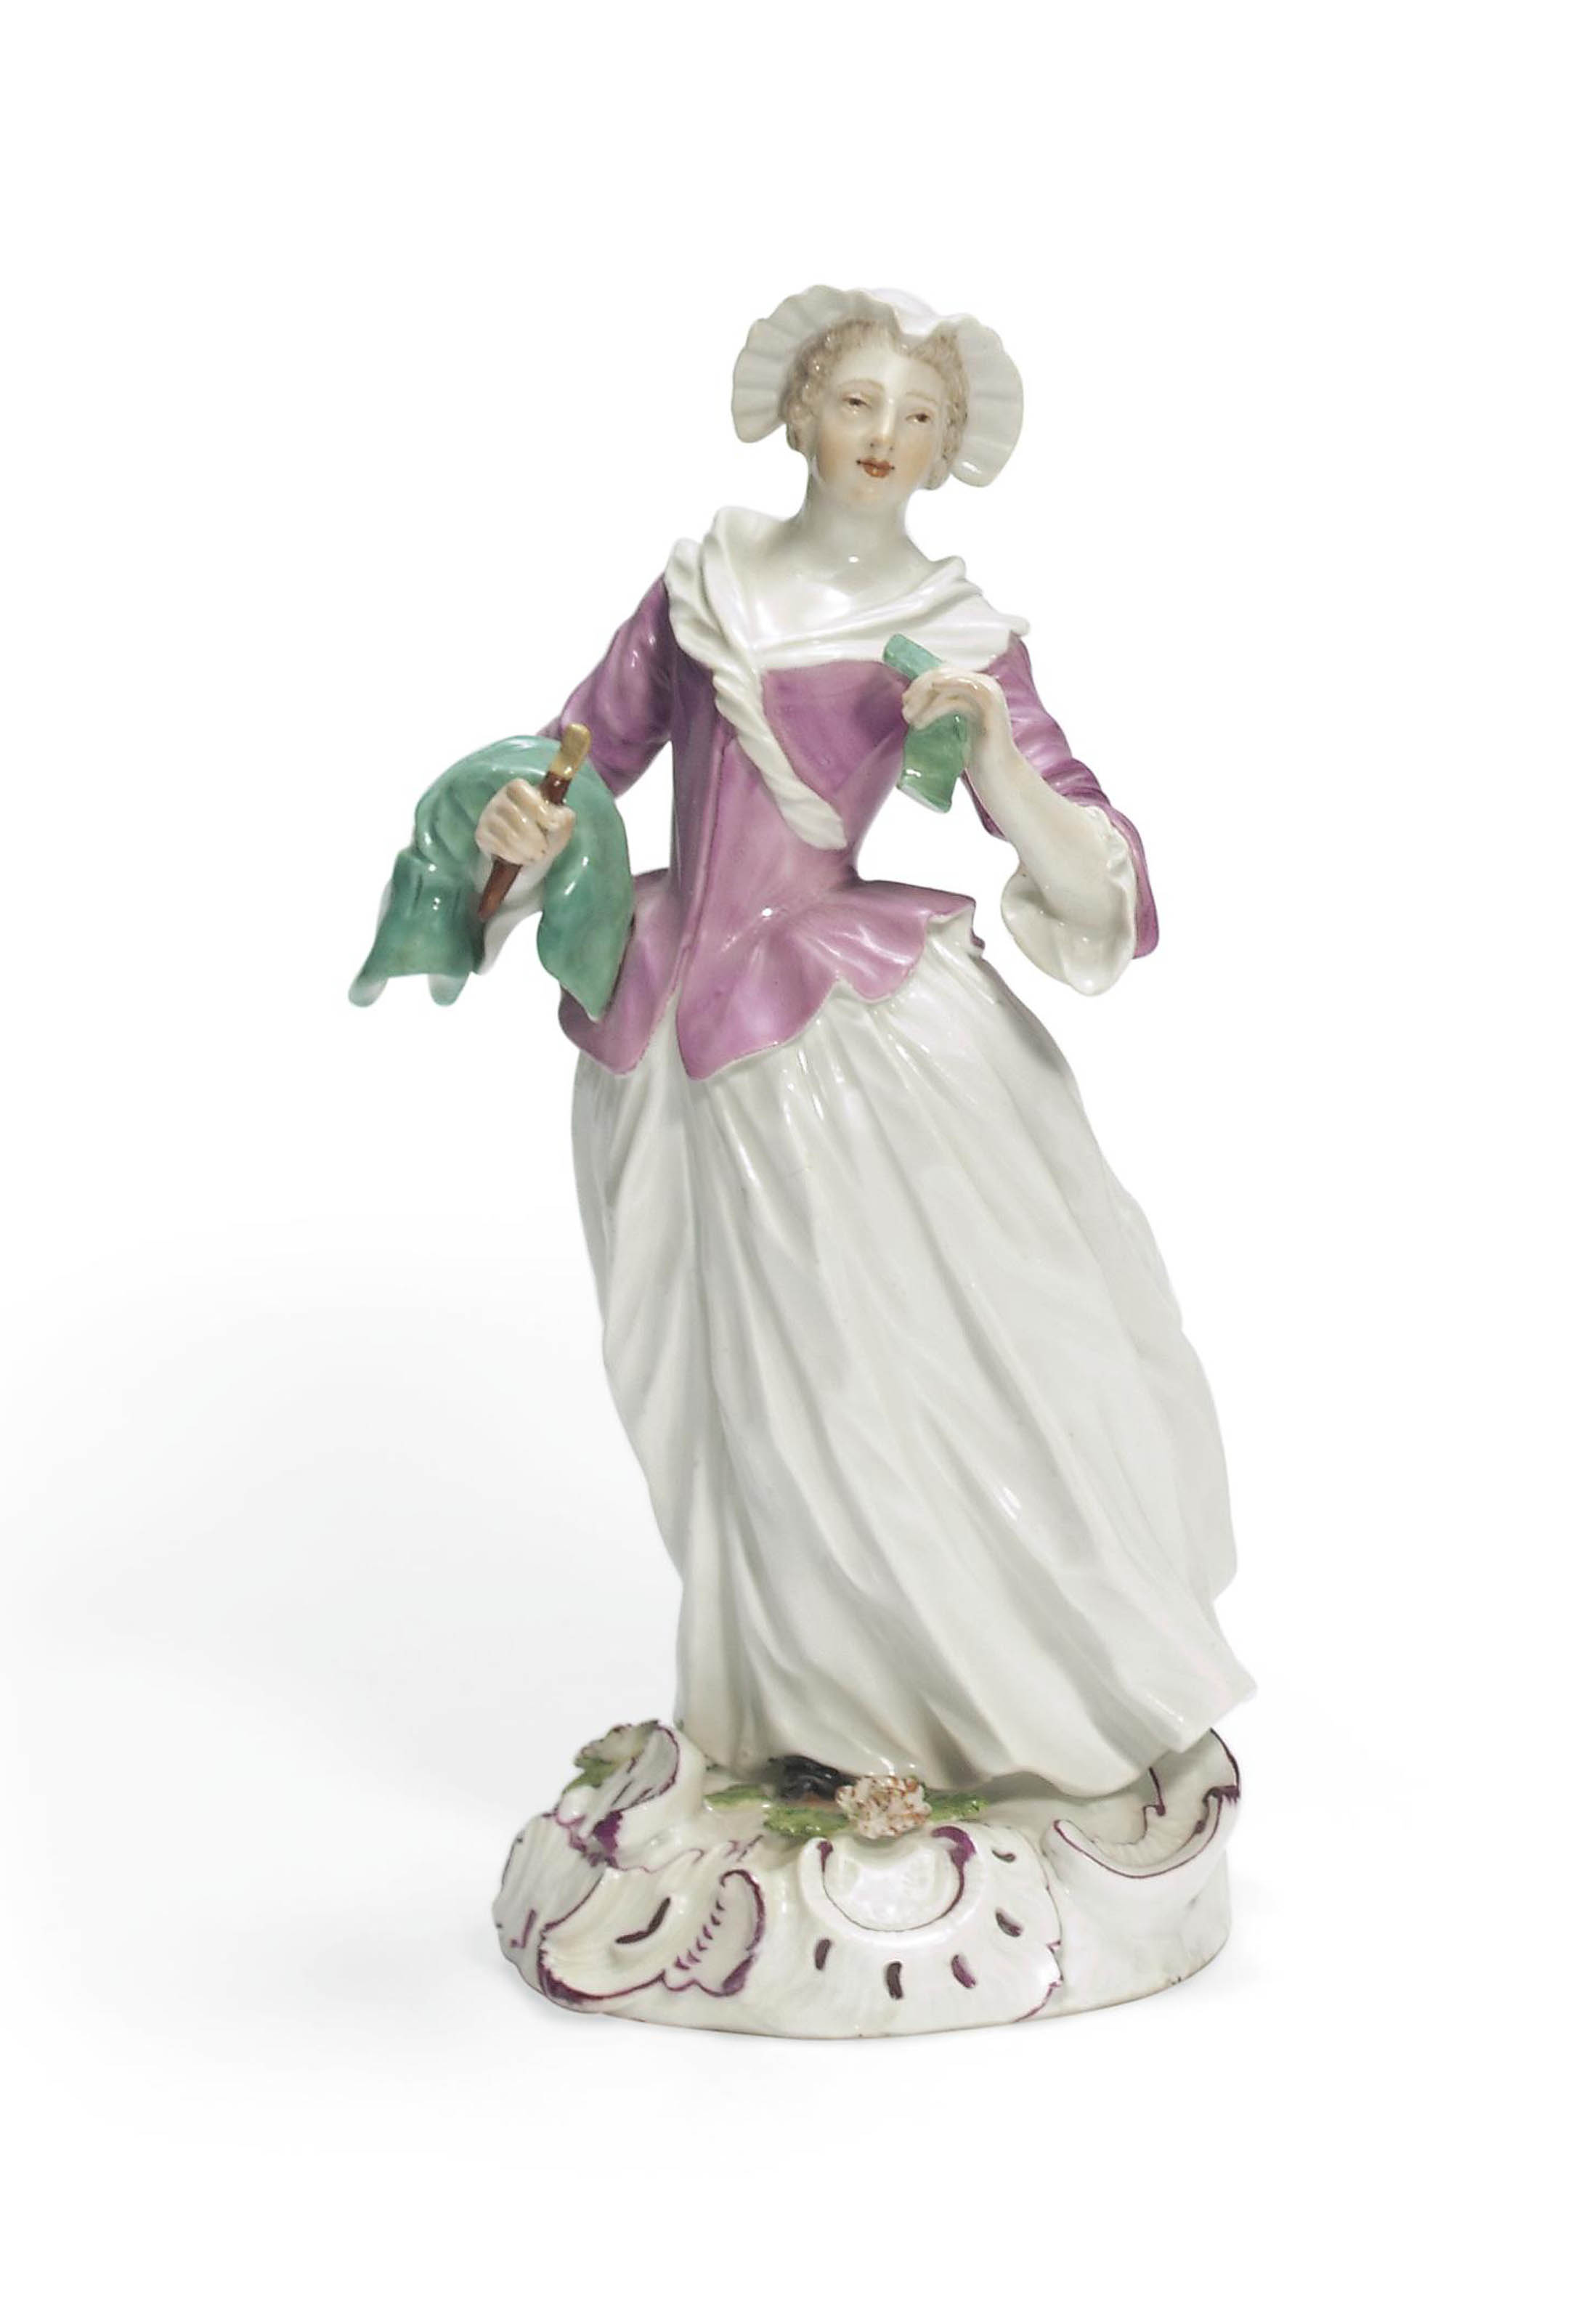 A MEISSEN FIGURE OF A SEAMSTRESS FROM THE ARTISAN SERIES